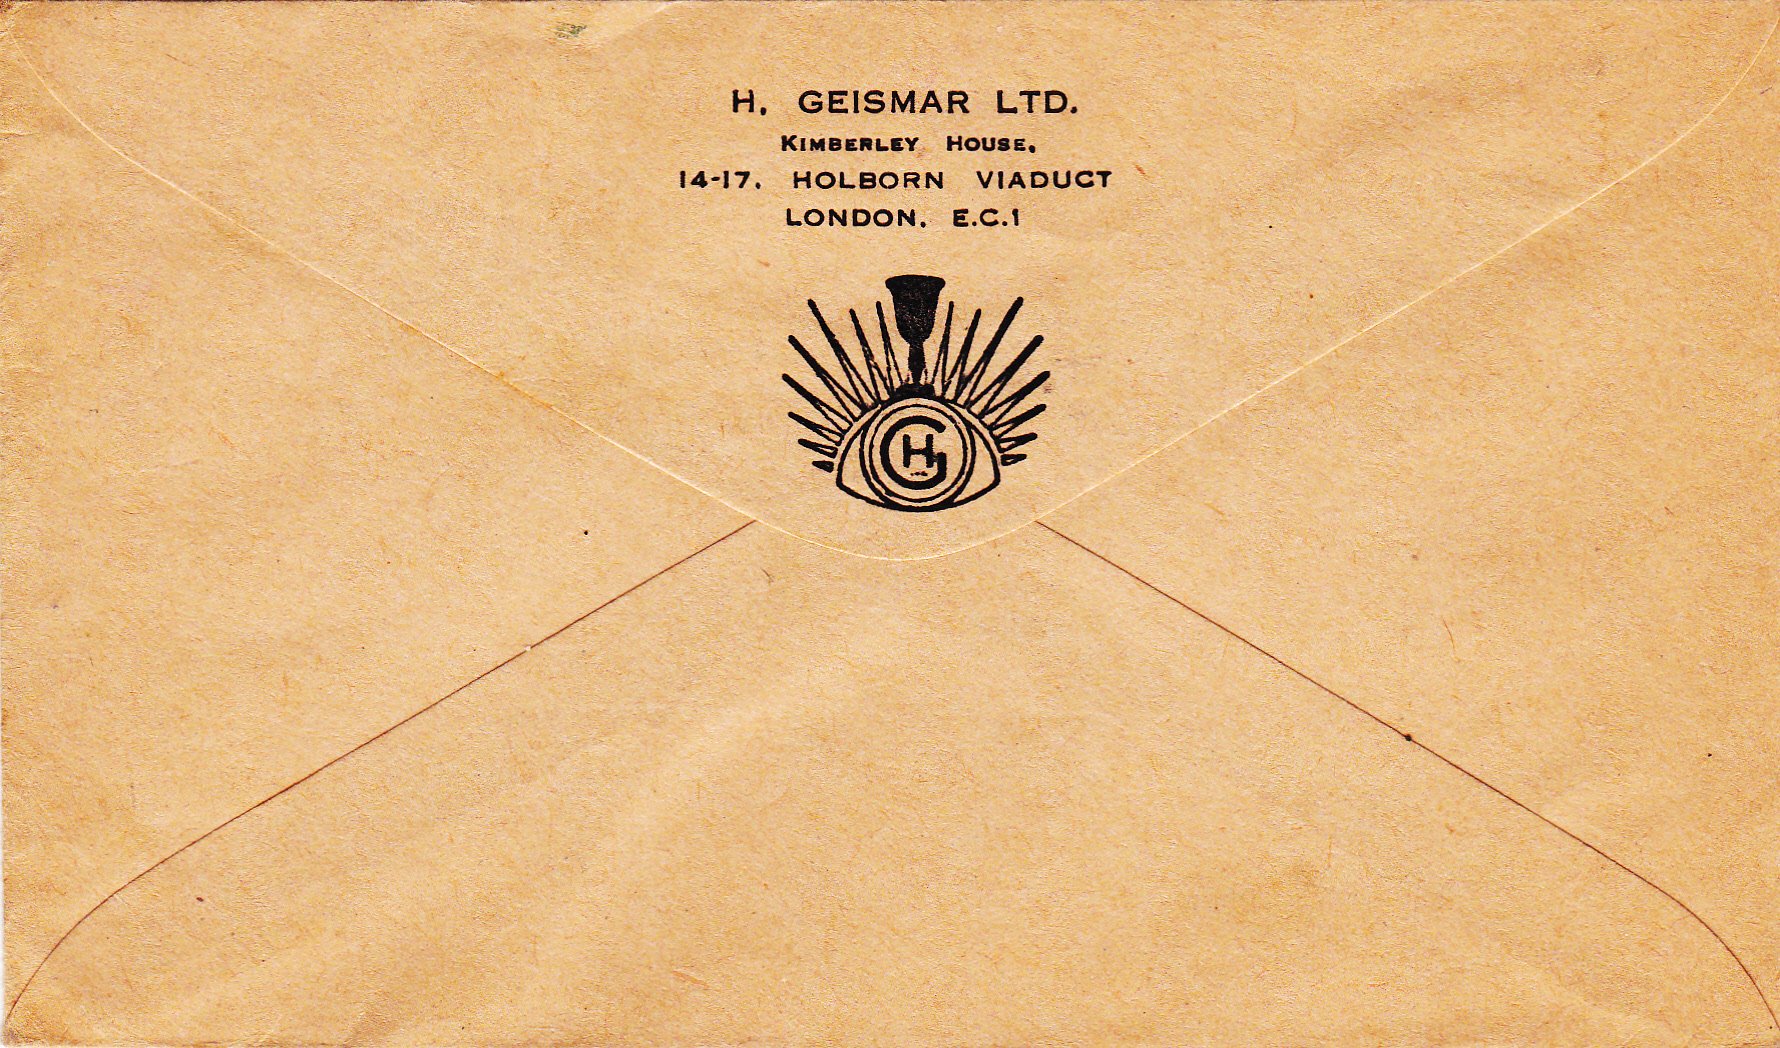 Hans Geismar Ltd envelope with company address and logo